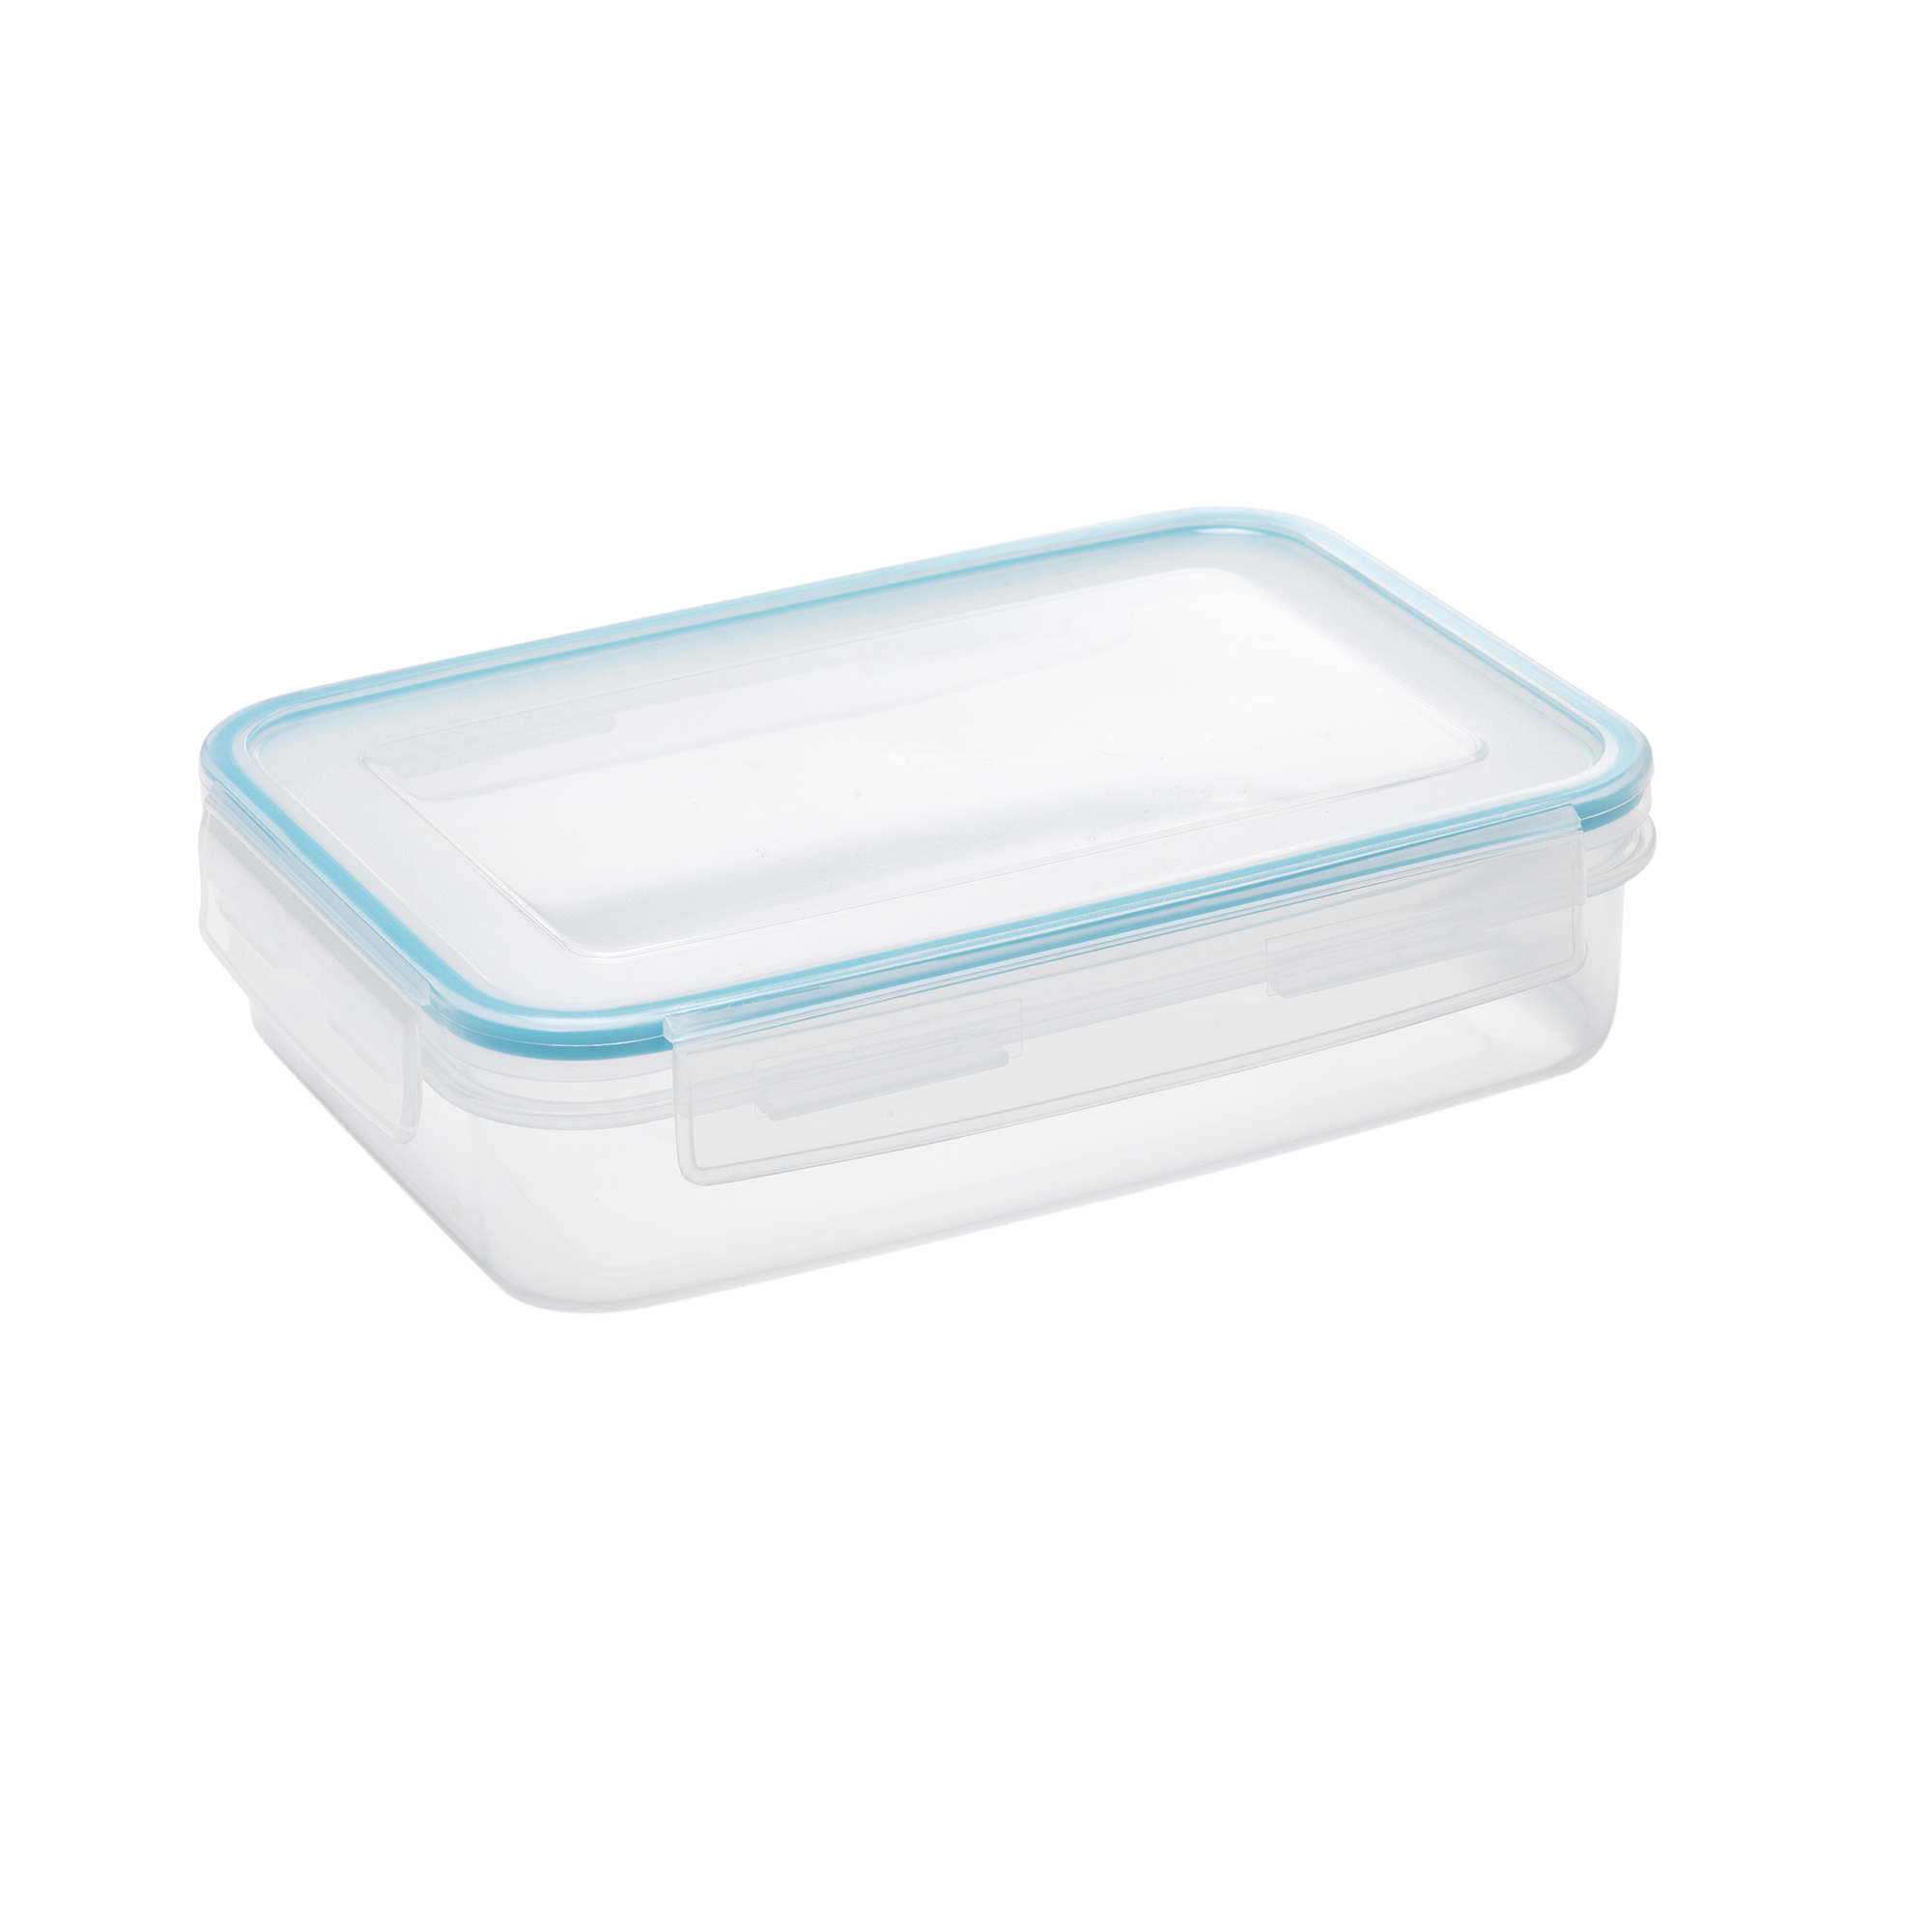 Domestic food storage containers Addis Clip & Close Rectangle 1.1 Litre Container Ref 502263